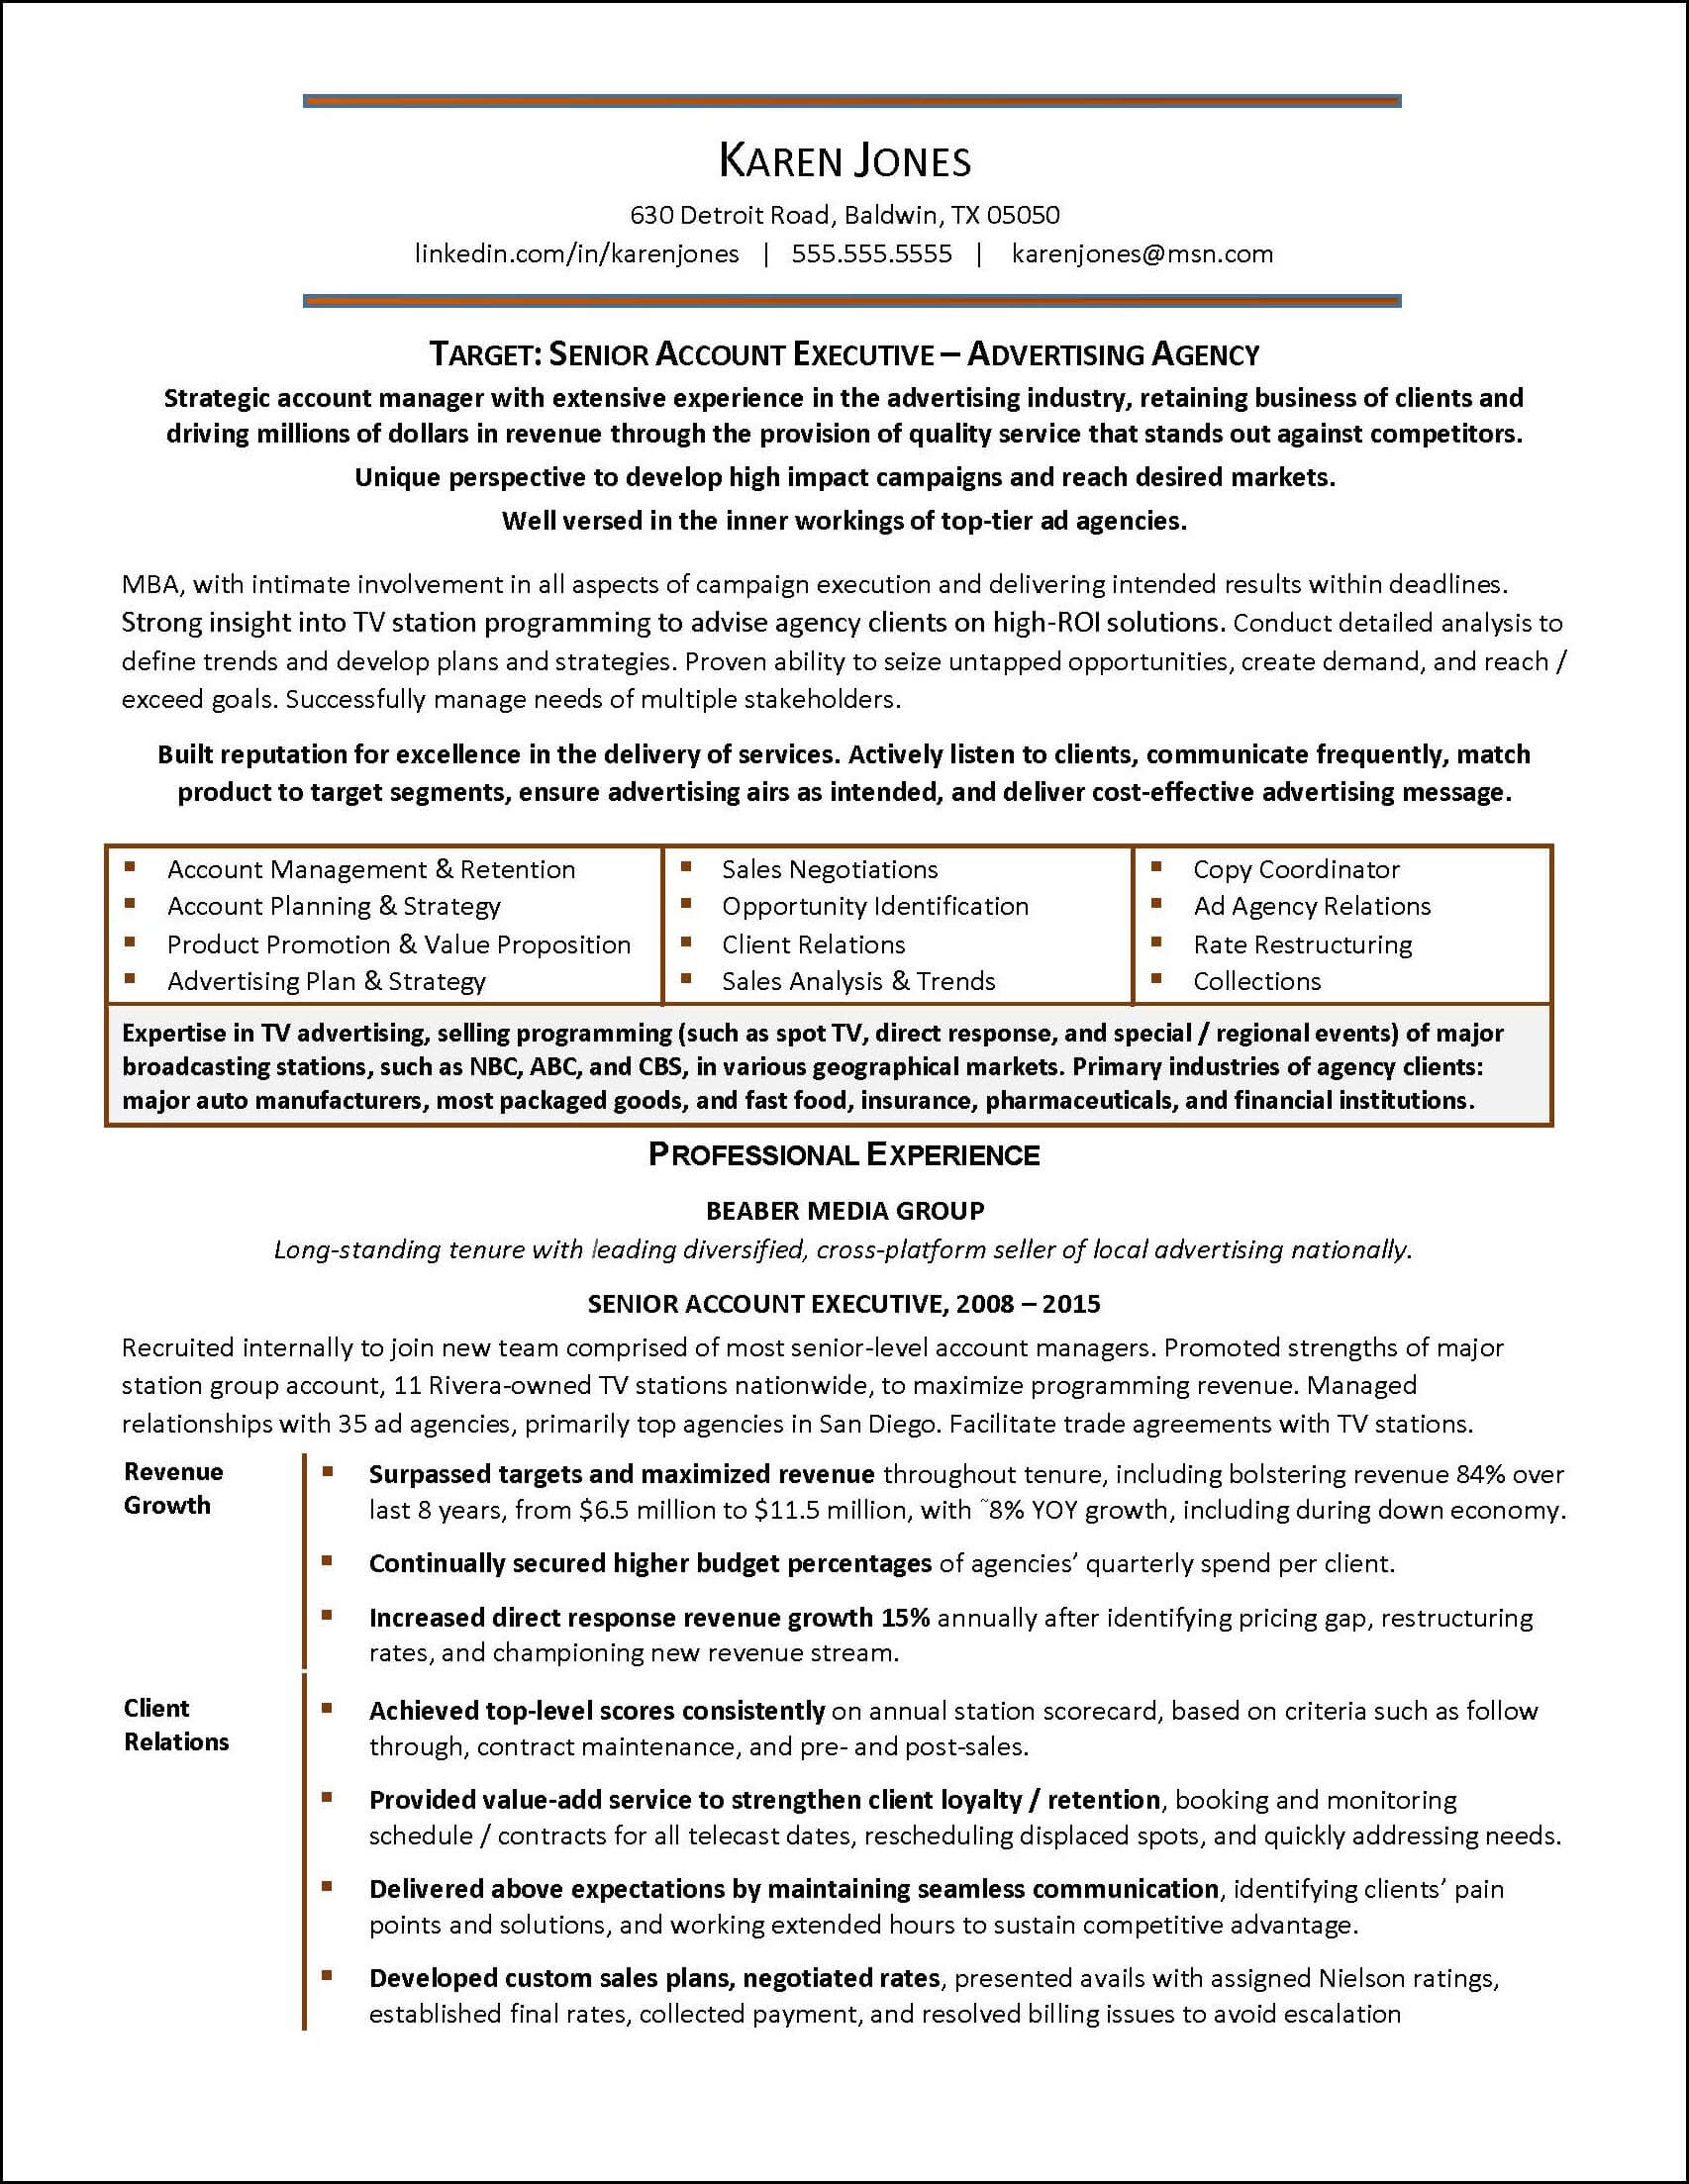 Sample Resume Written To Help An Advertising Industry Account Executive  Advance Her Career U2013 Page 1  Mid Career Resume